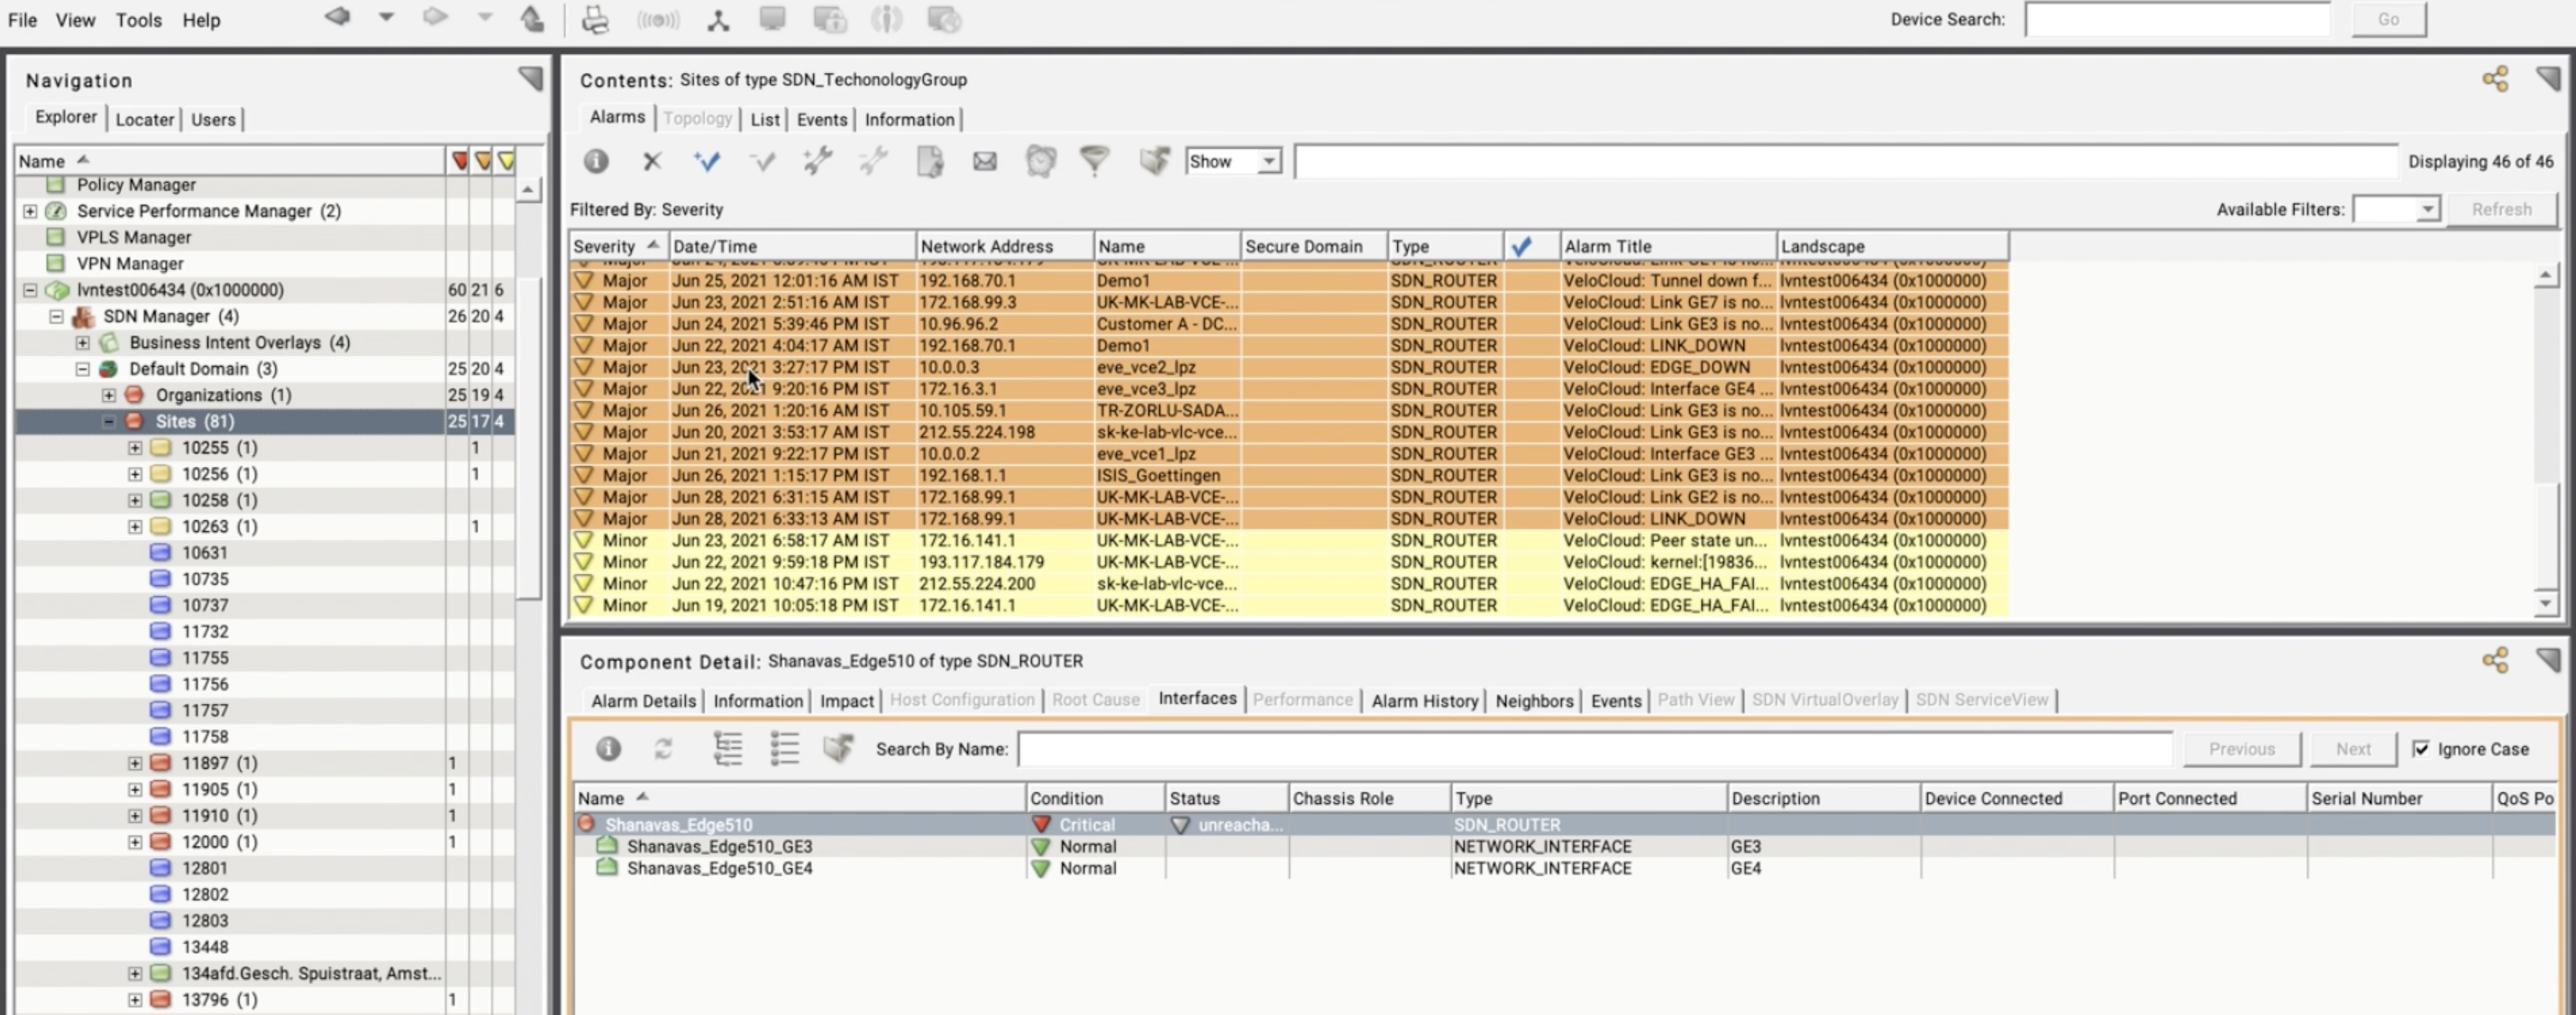 ESD_FY21_Academy-Blog.What's New In DX NetOps Spectrum Network Monitoring Software.Figure_01-1